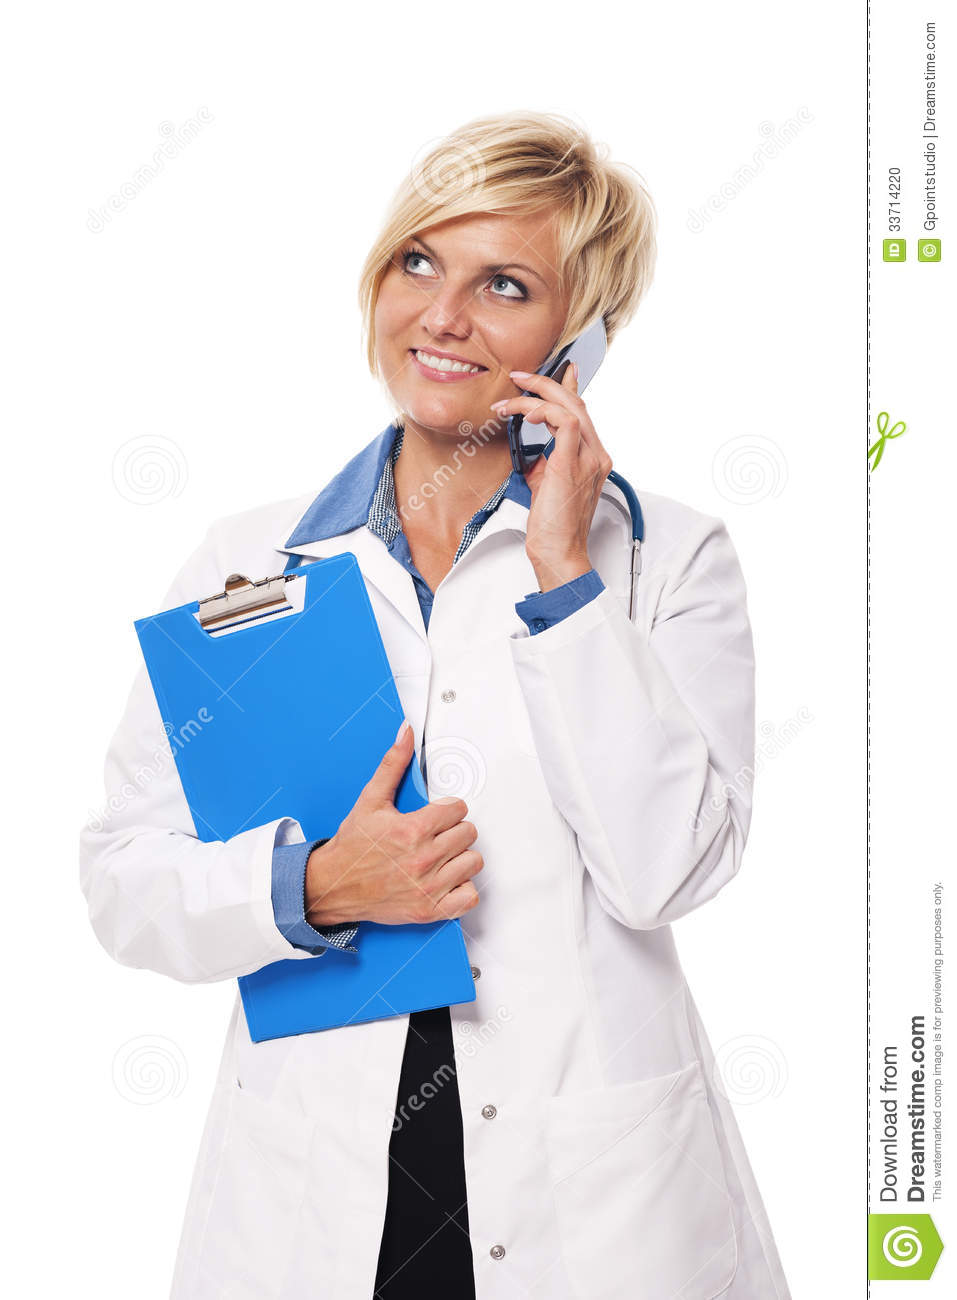 Busy Doctor Stock Photo - Image: 33714220